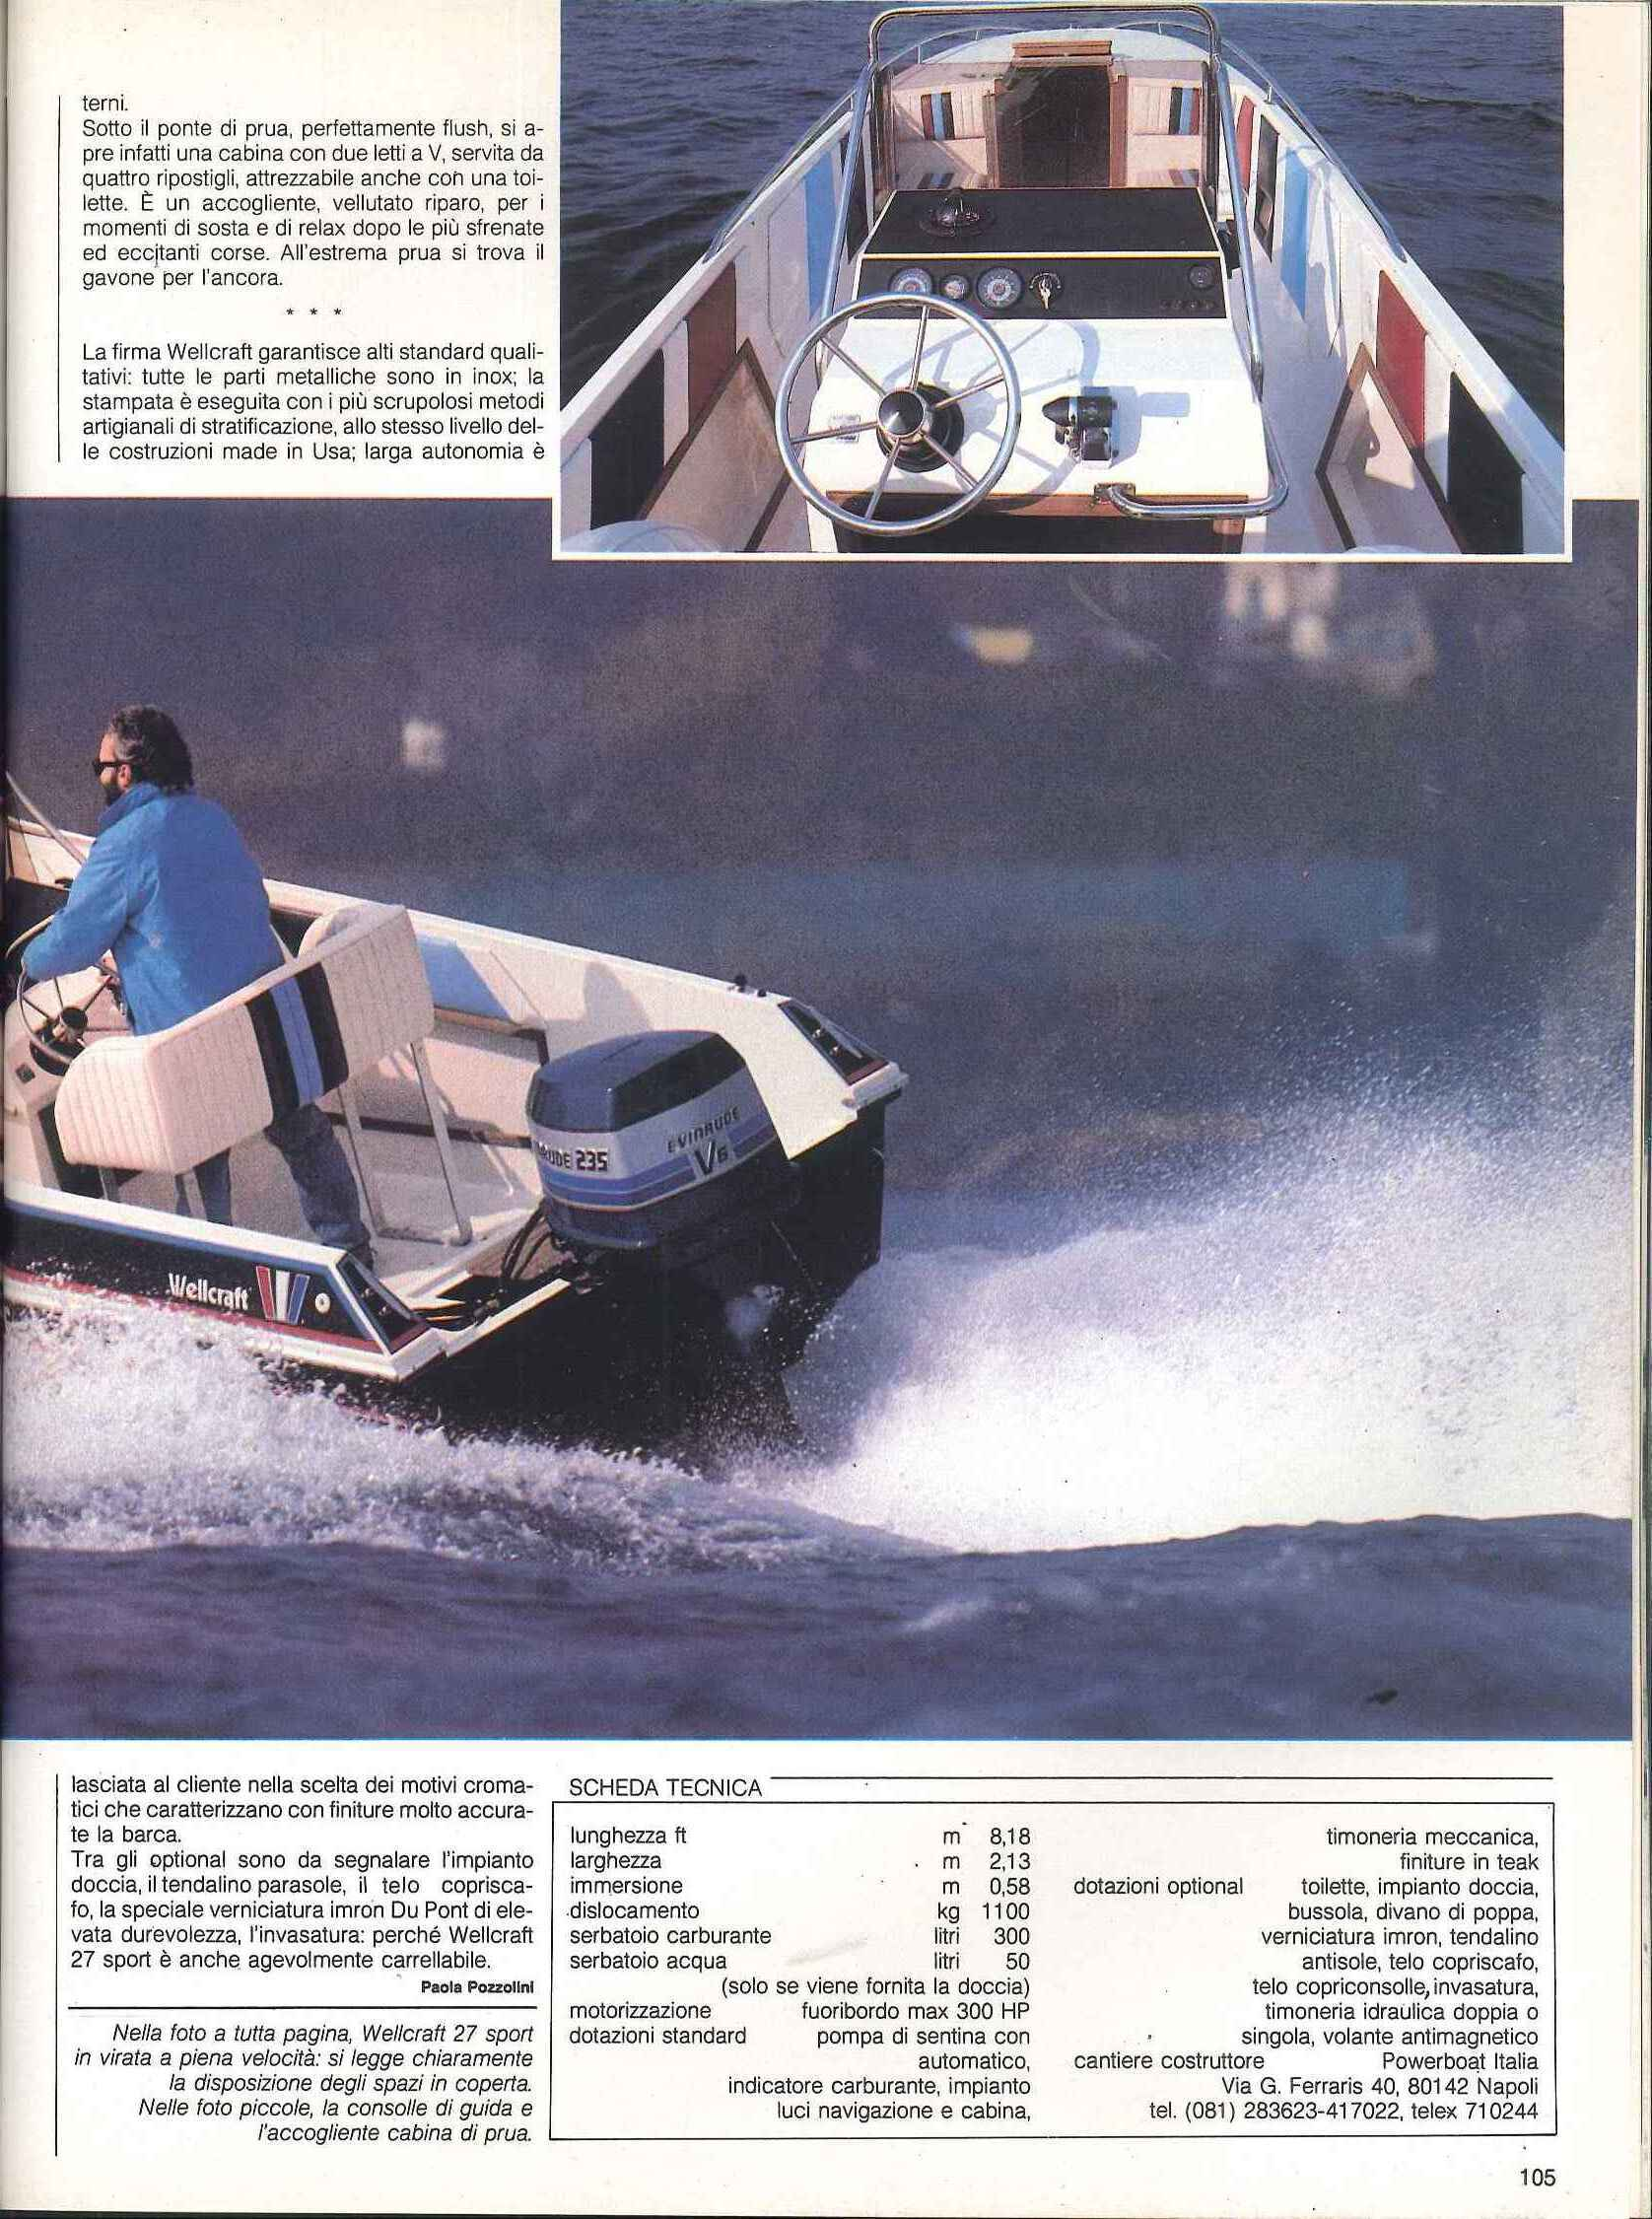 1985 03 PRESS WELLCRAFT 27 SPORT UOMO MARE N°85(4).jpg